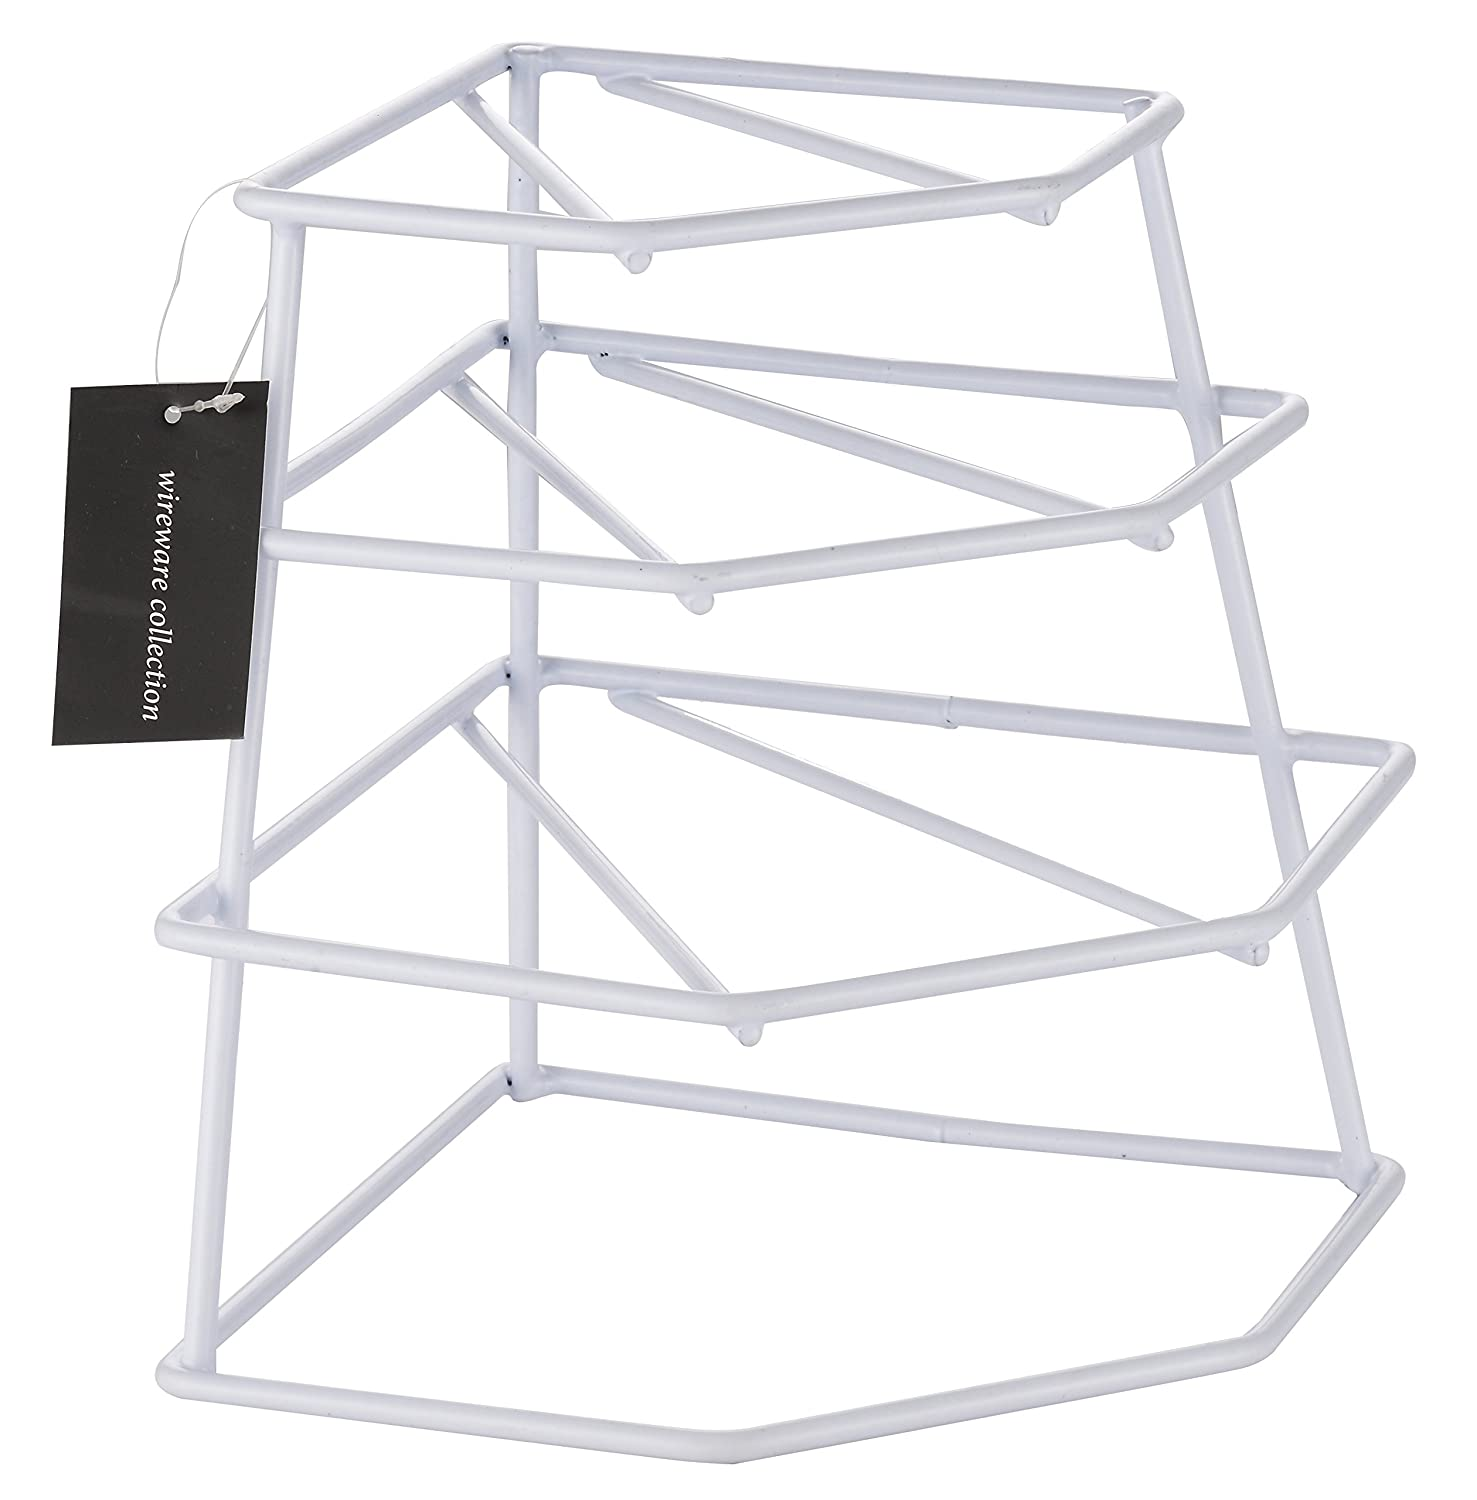 Buckingham 4 Tier Corner Plate, Kitchen Cupboard Organiser, Storage Rack, Space Saver-Premium Quality, Steel, White, 23 x 23 x 26 cm B & I International 30055